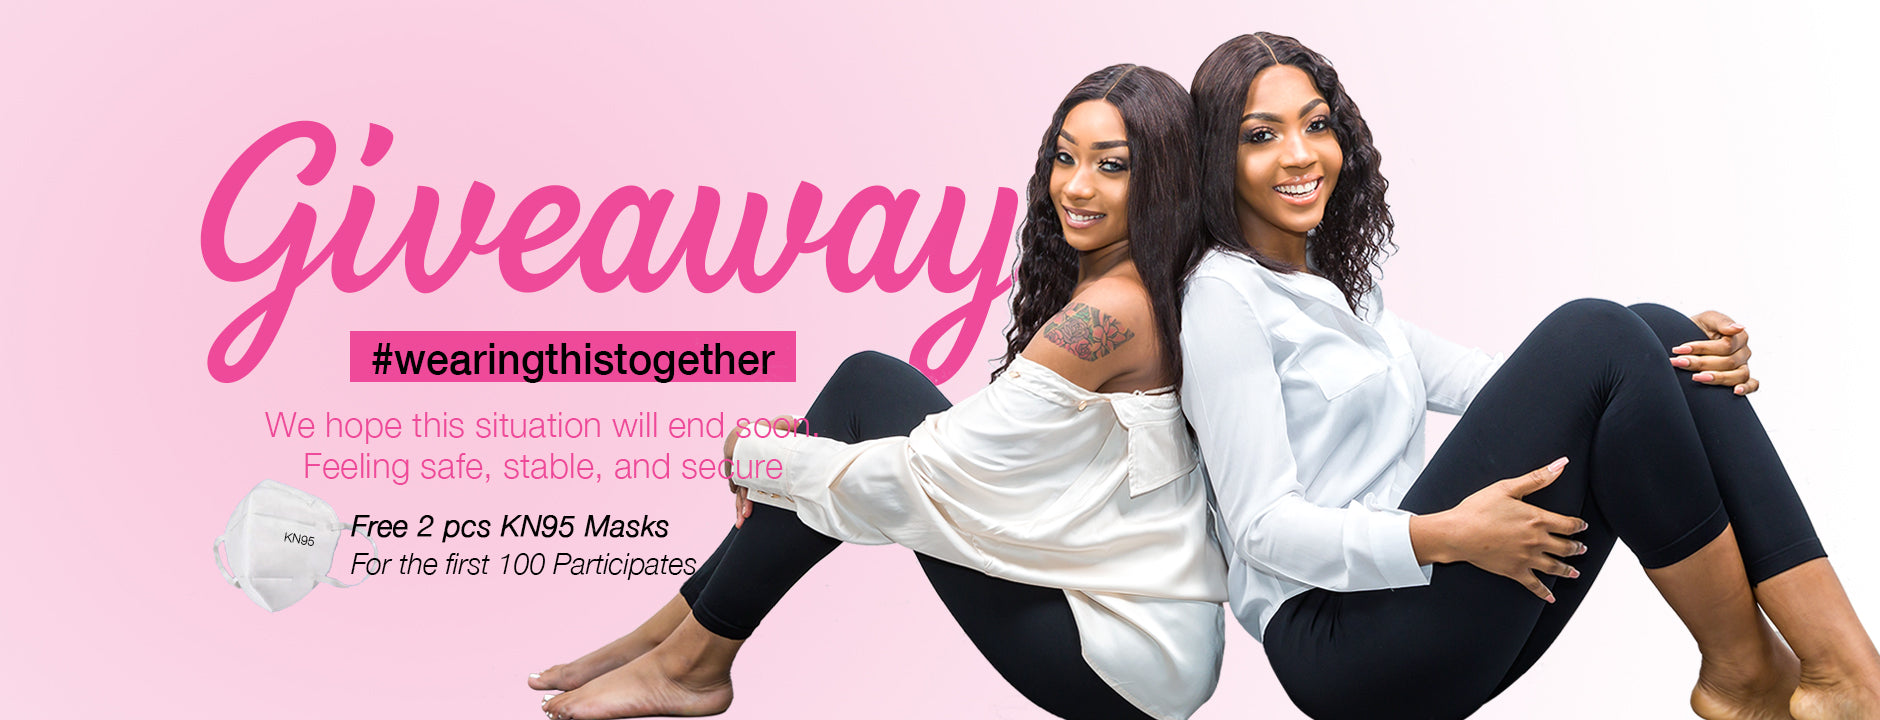 Giveaway l BrooklynHair.com l Together